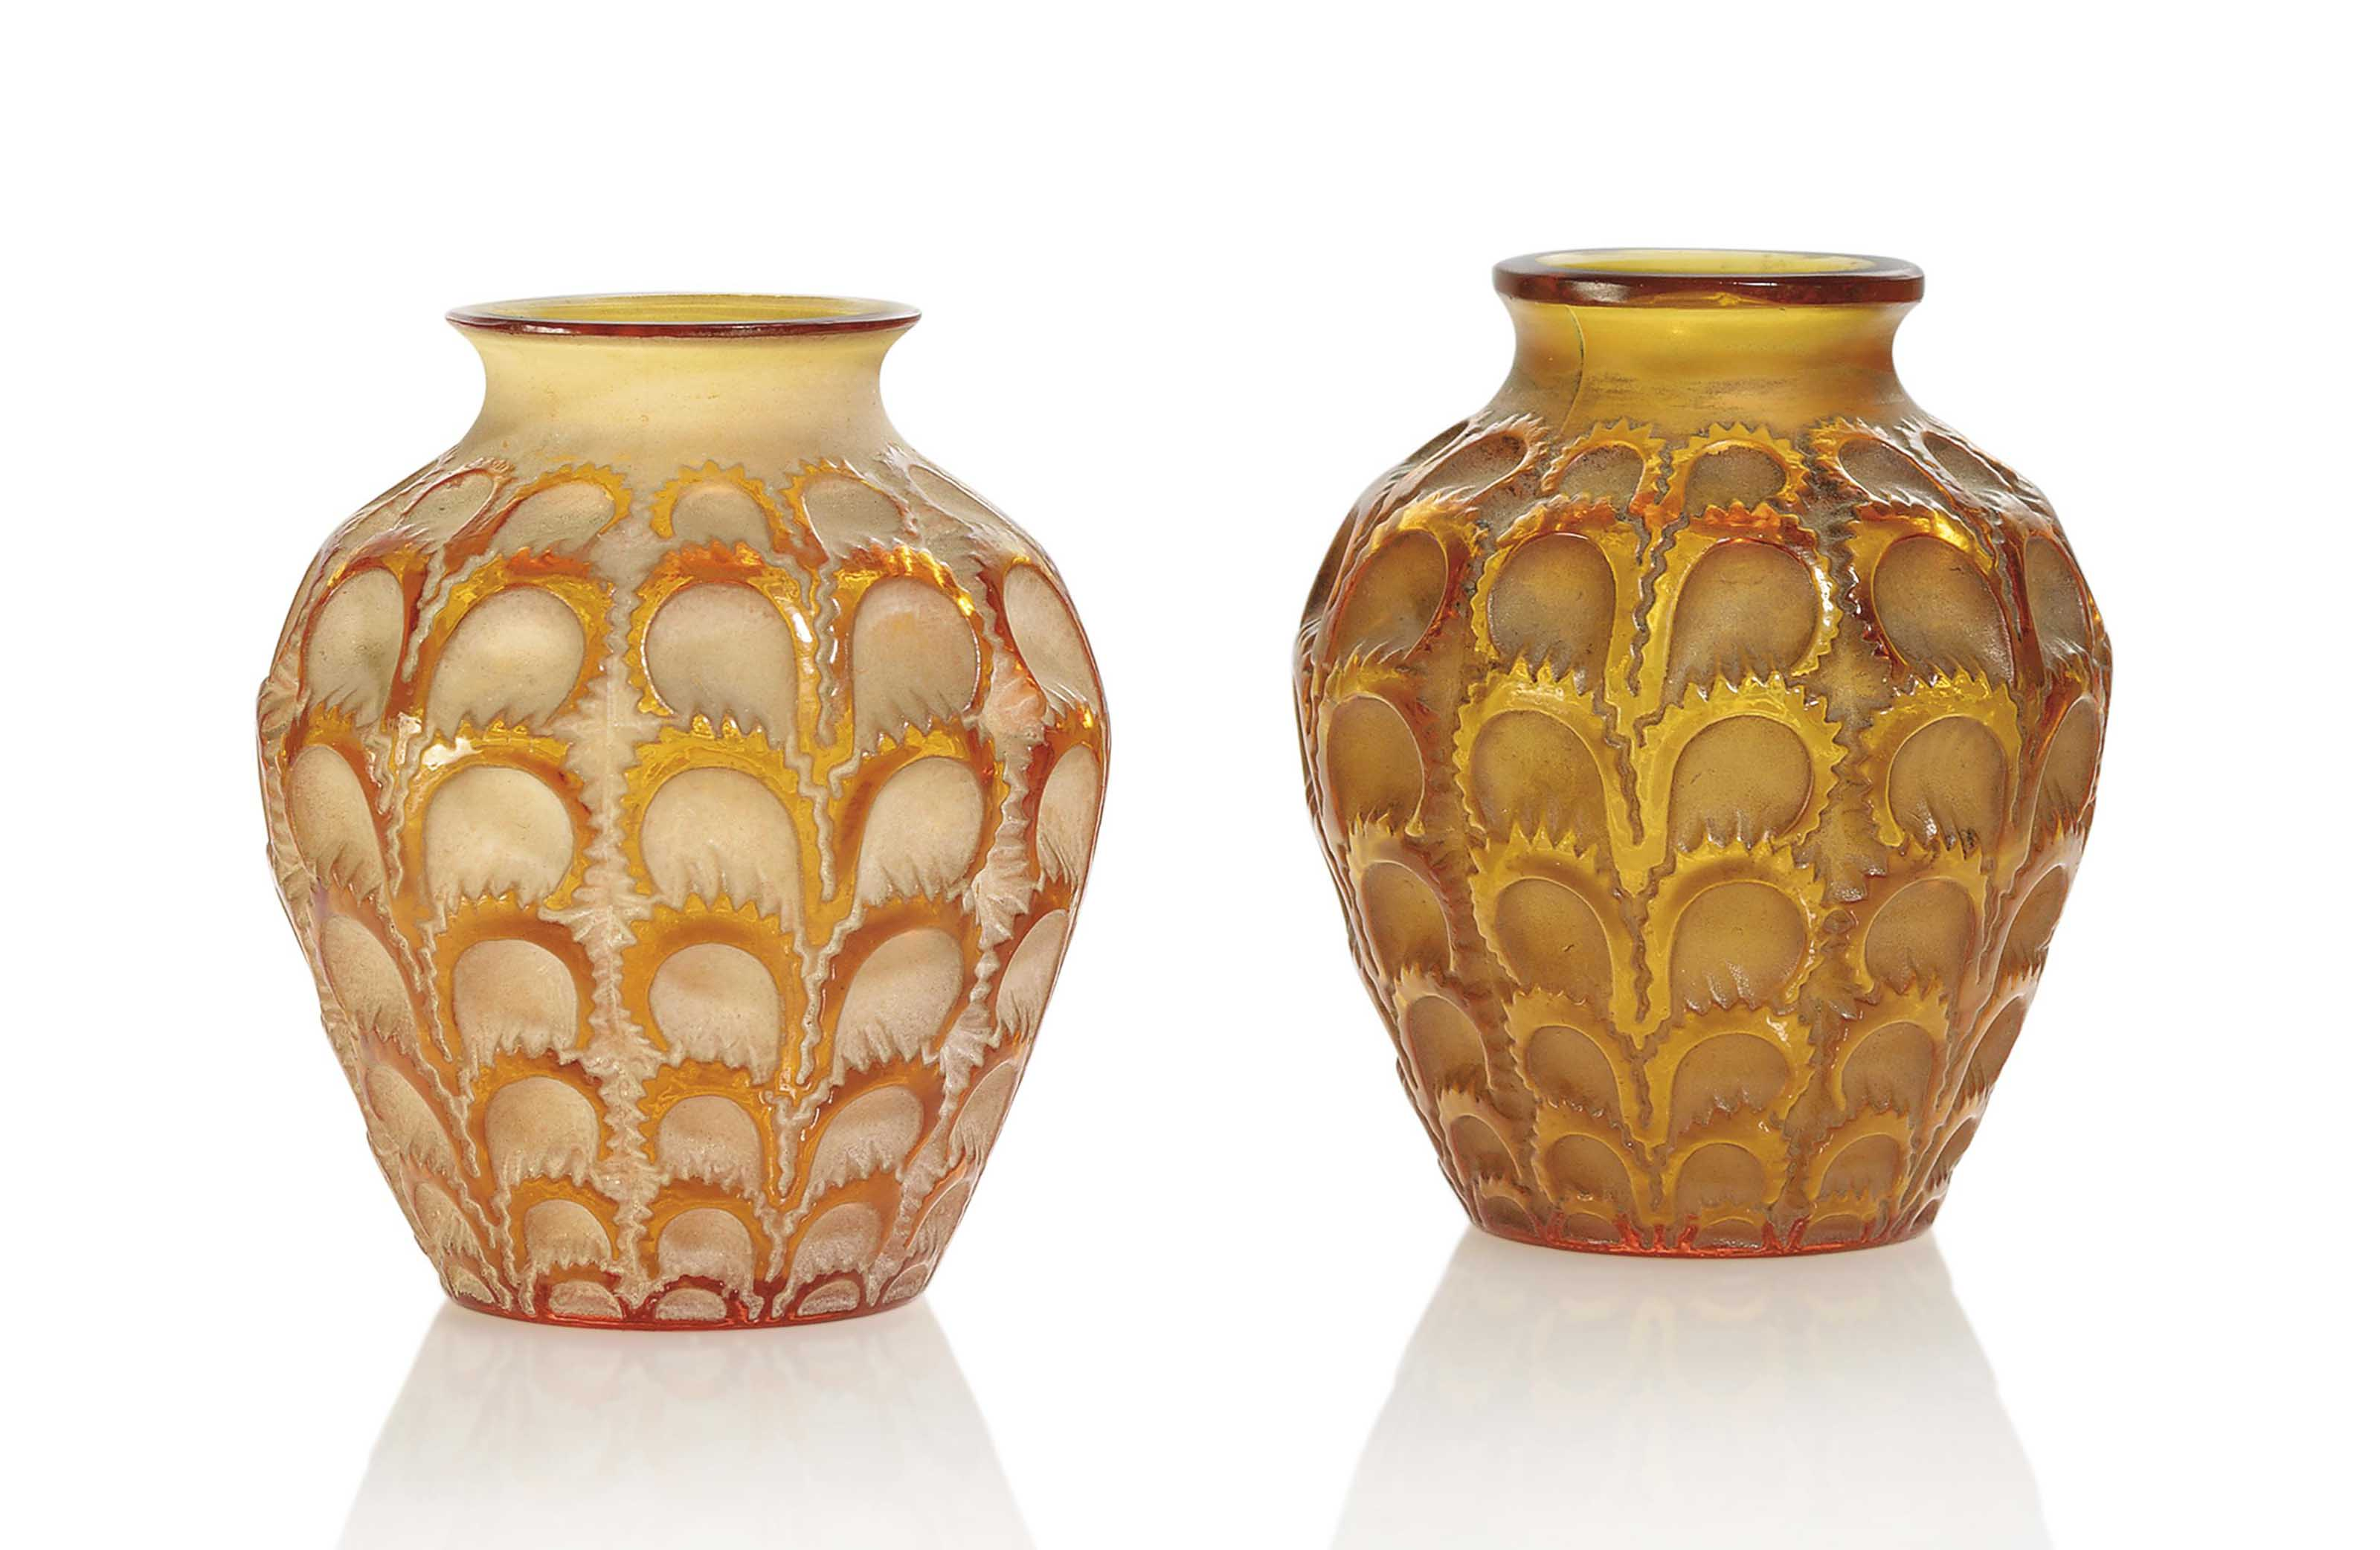 TWO LAITERONS VASES, NO. 1072